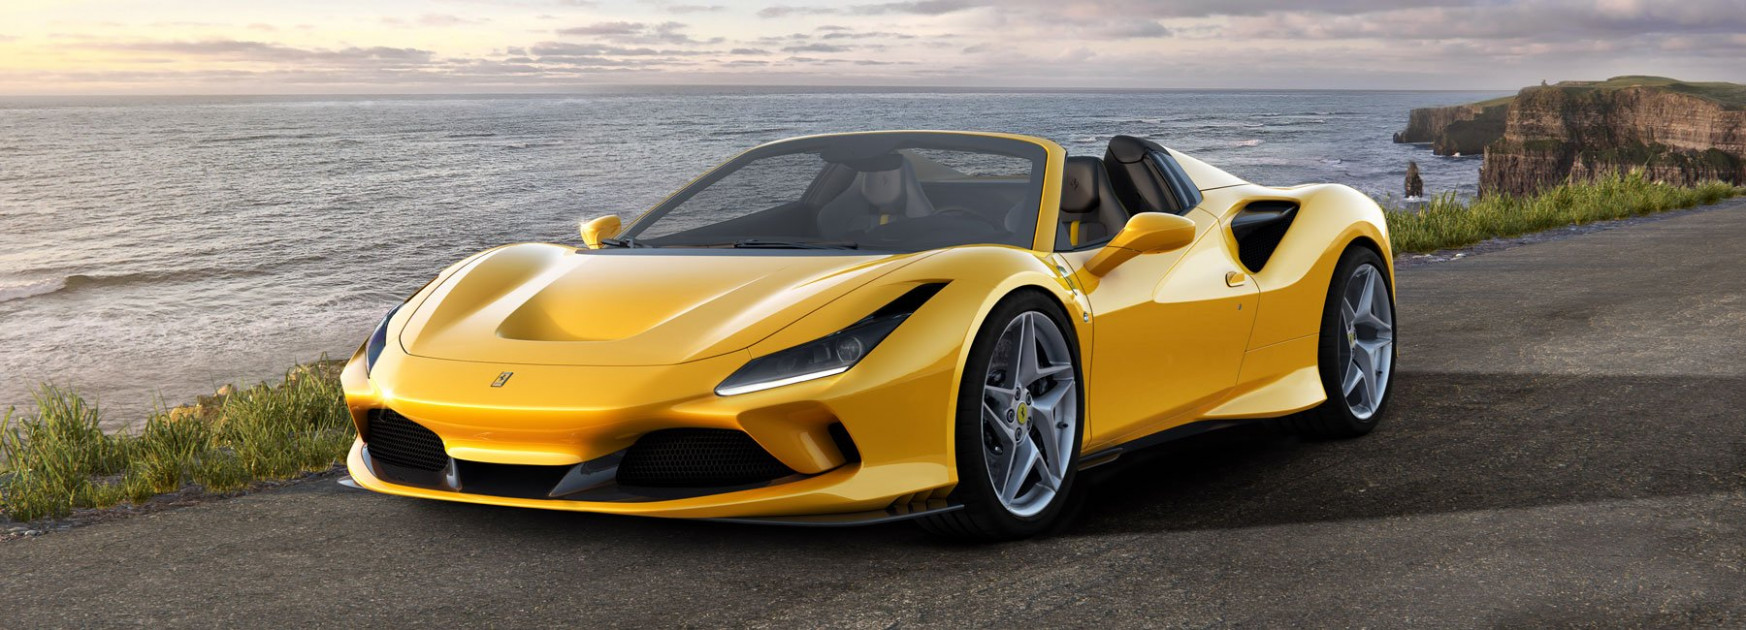 ferrari reveals 7 f7 spider with more power and less weight - images of 2020 ferrari